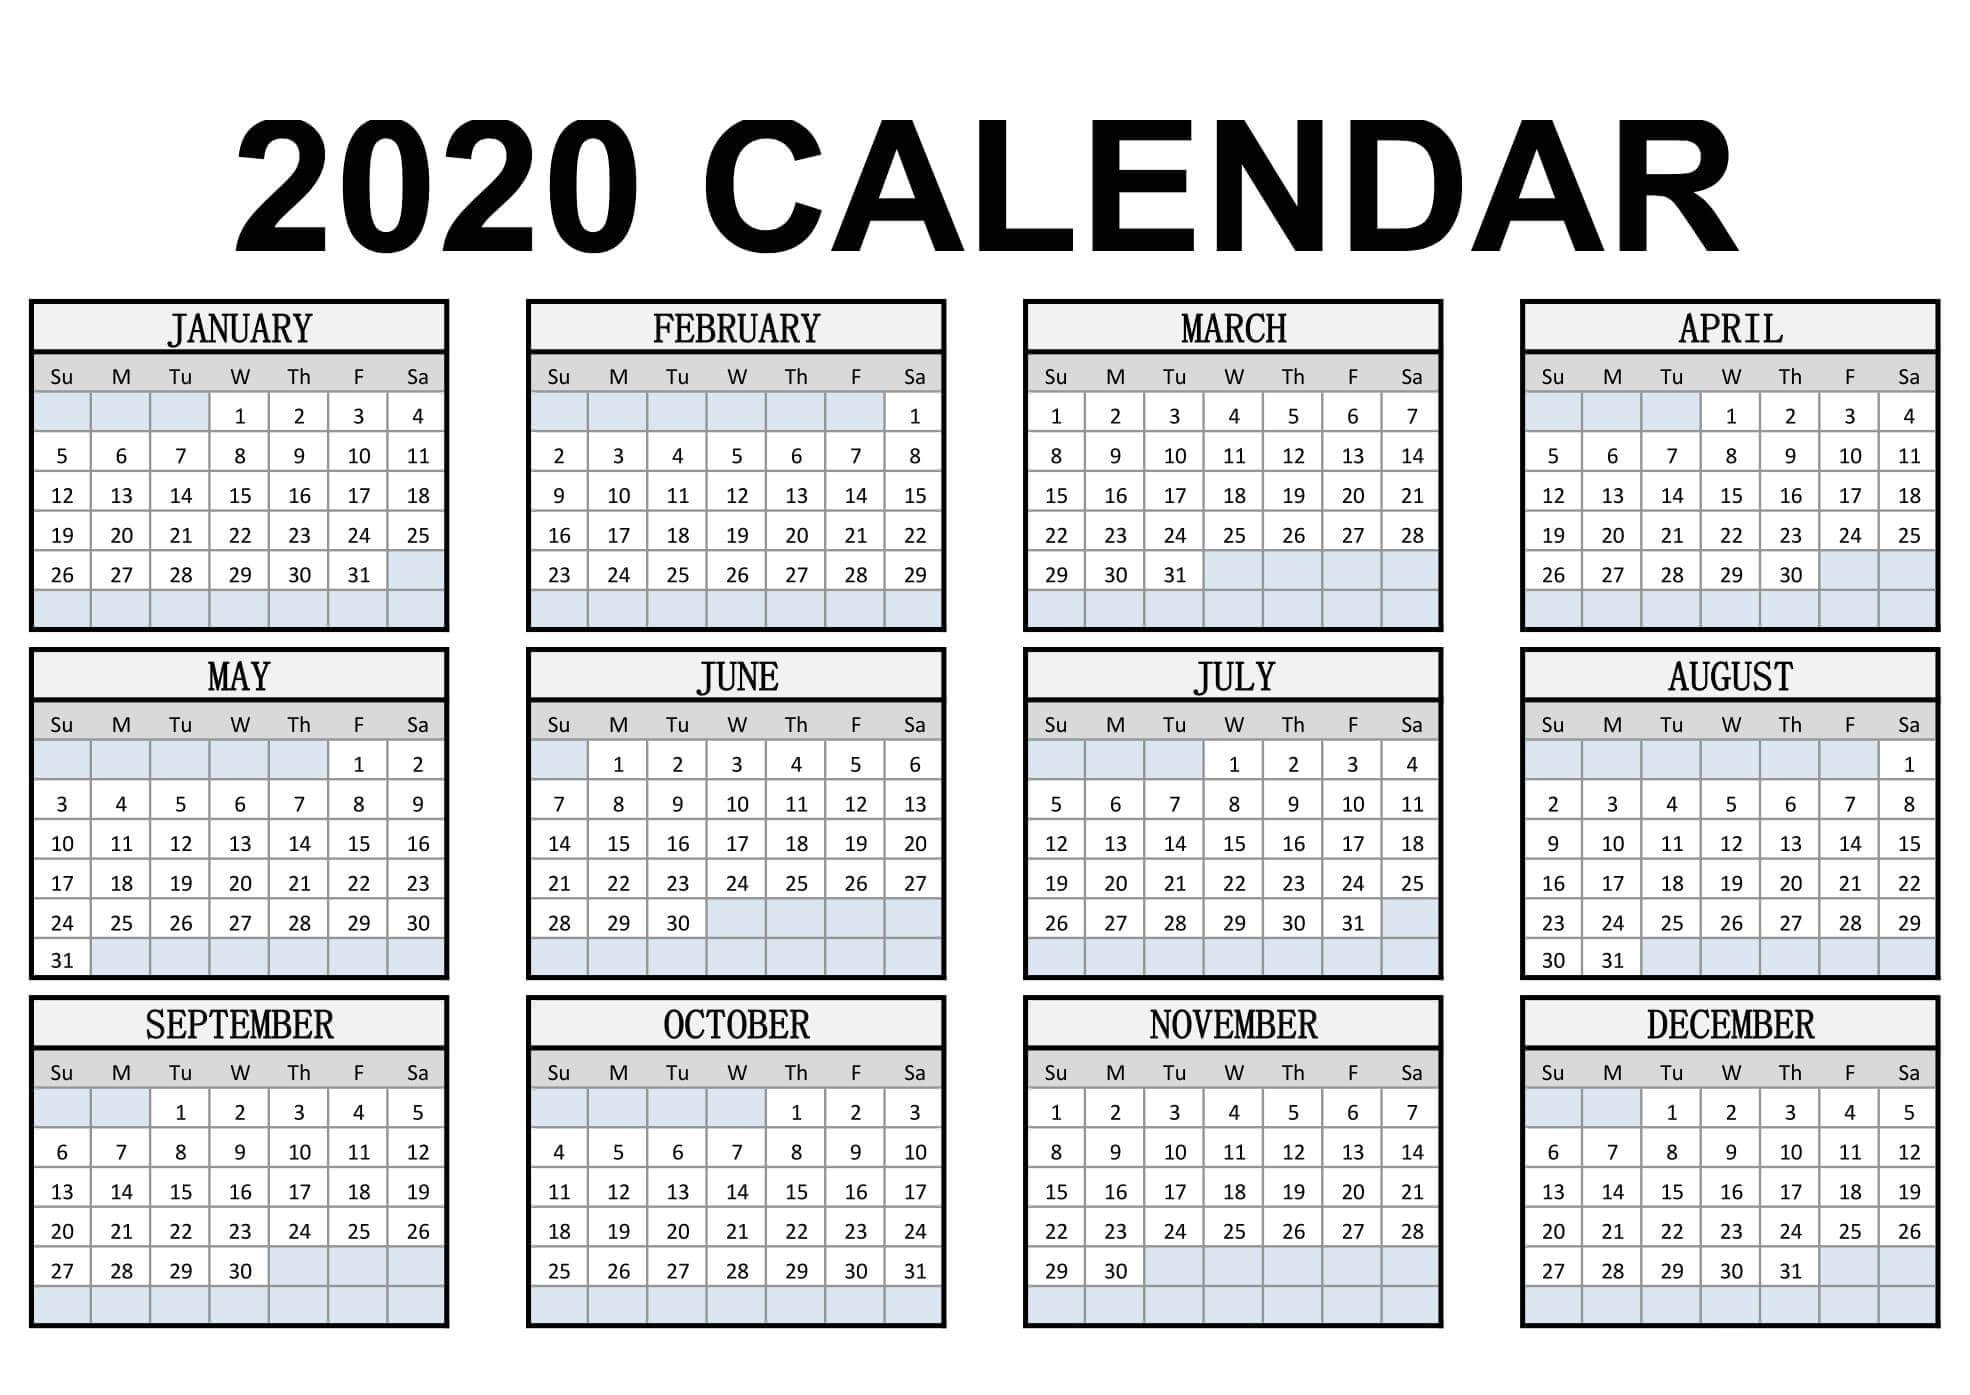 Calendar Year 2020 Holidays Template - 2019 Calendars For in Free Printable Yearly Planner 2020